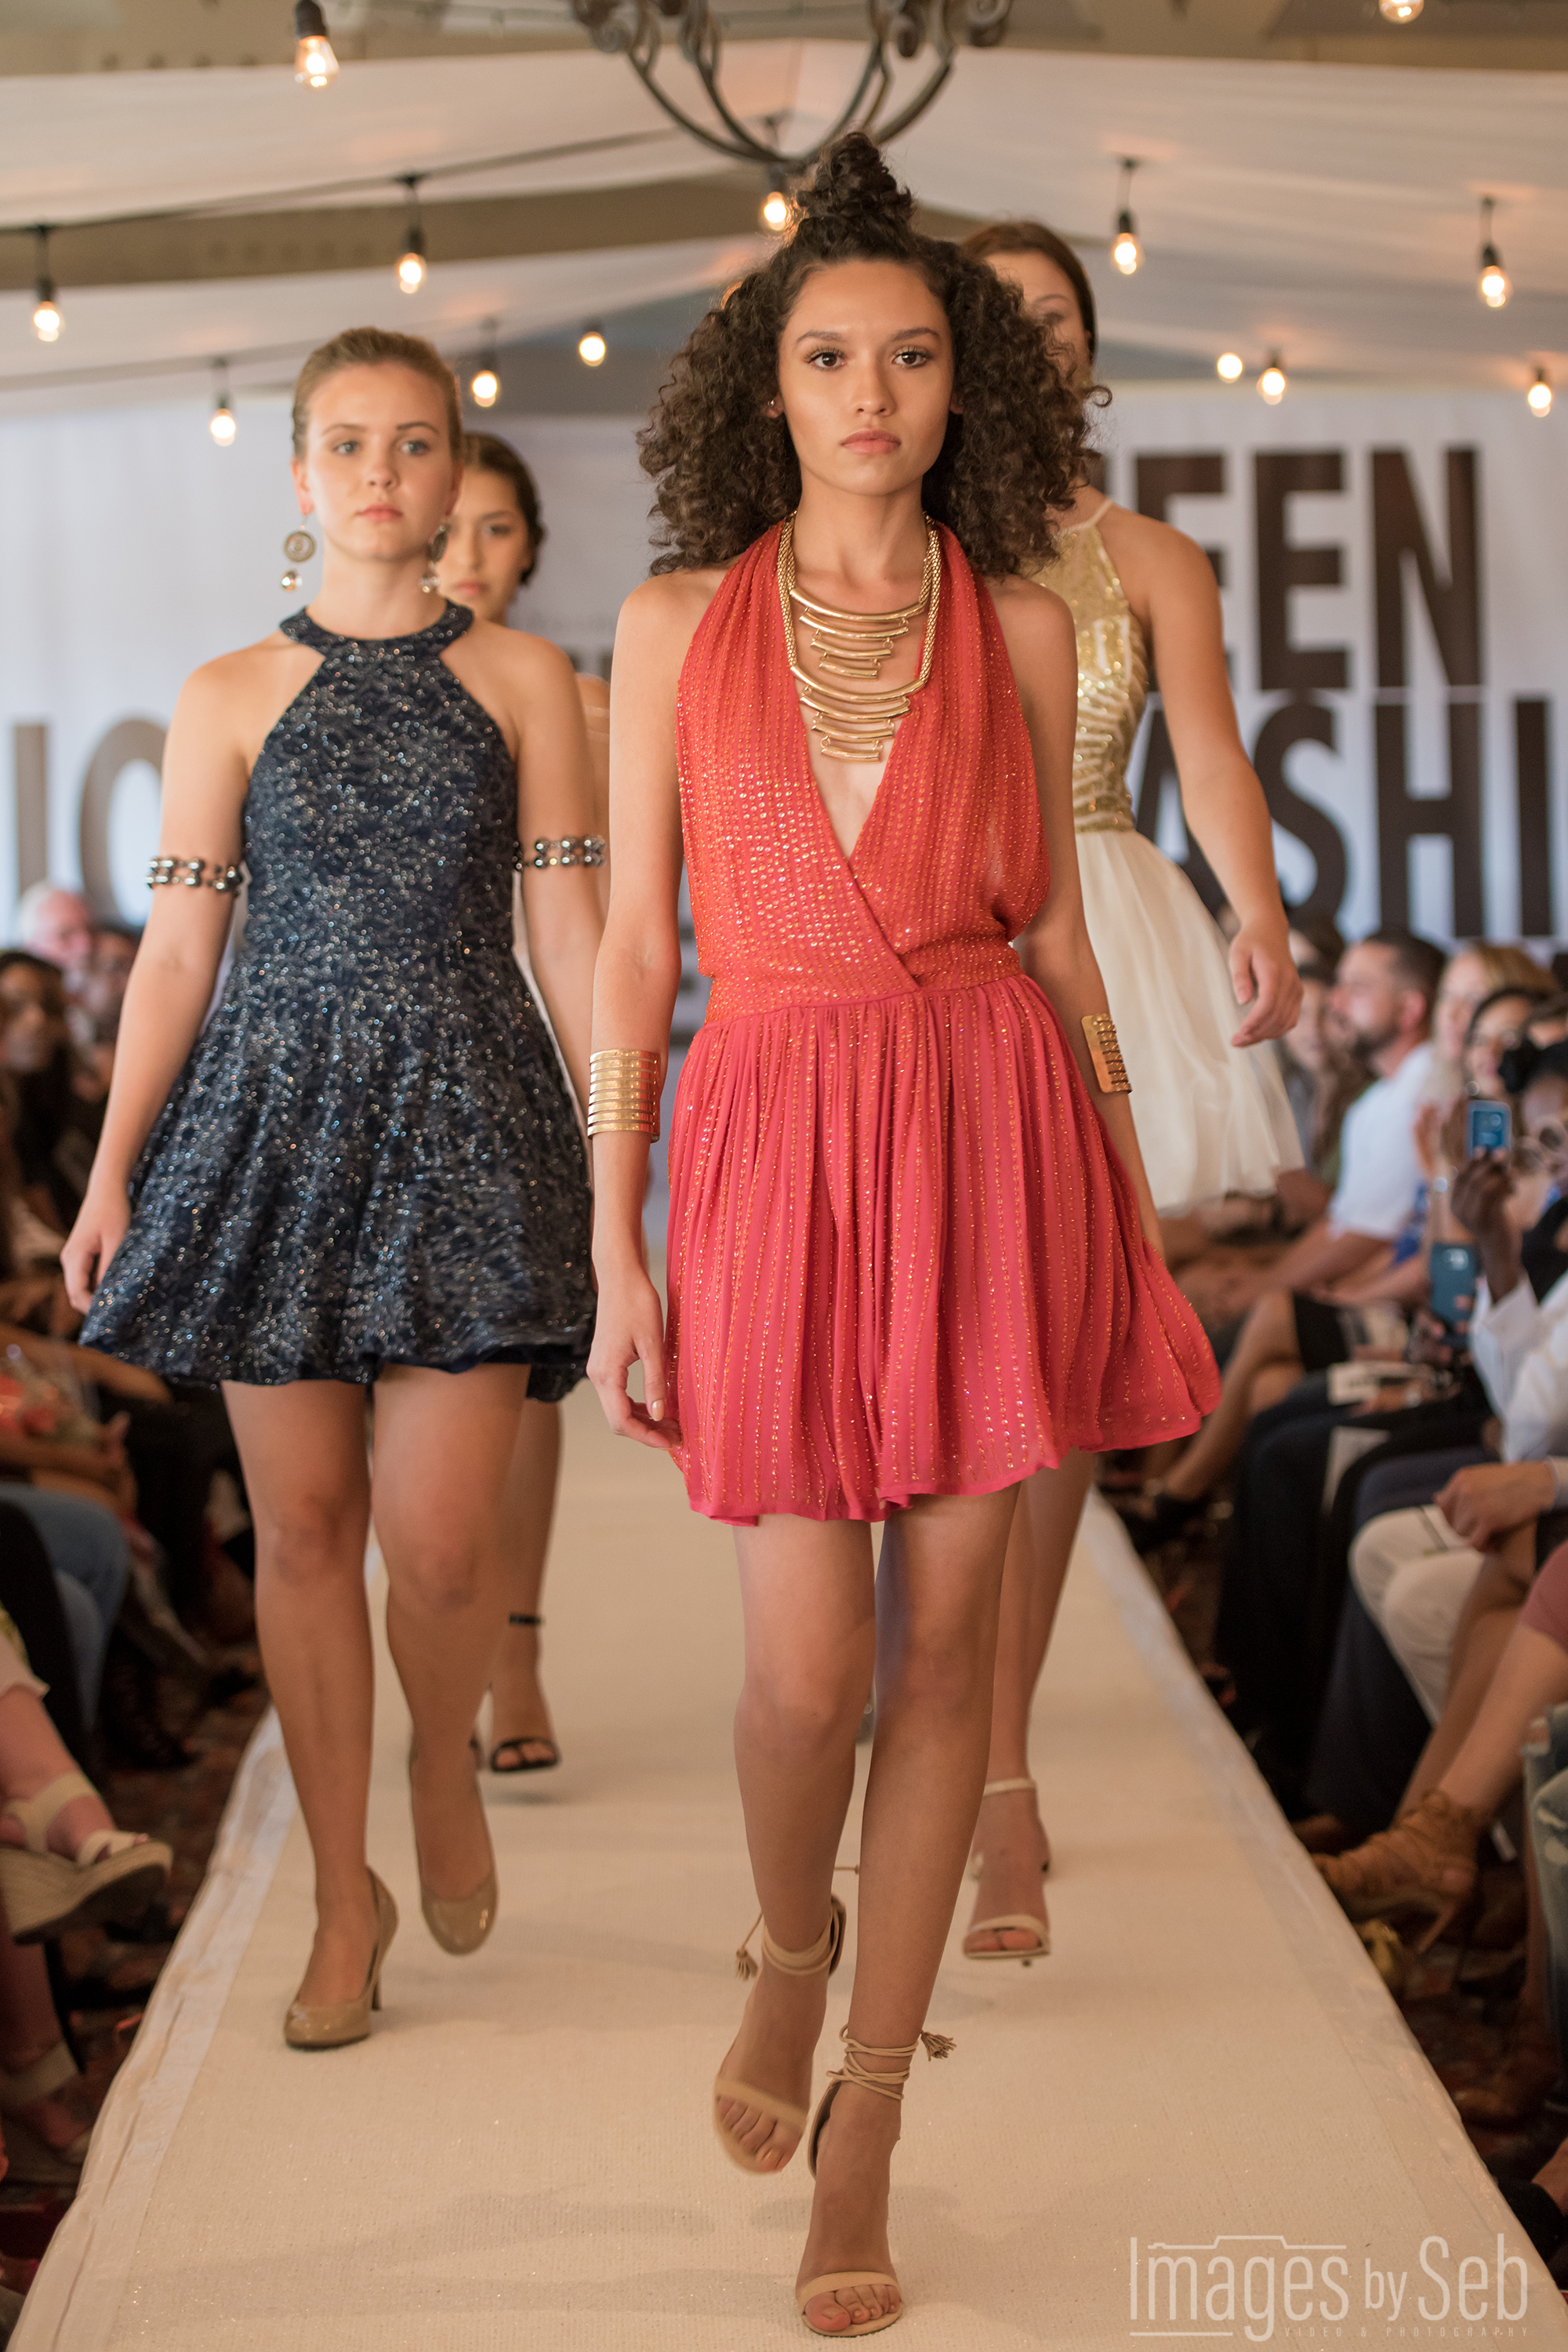 Teen Fashion Show